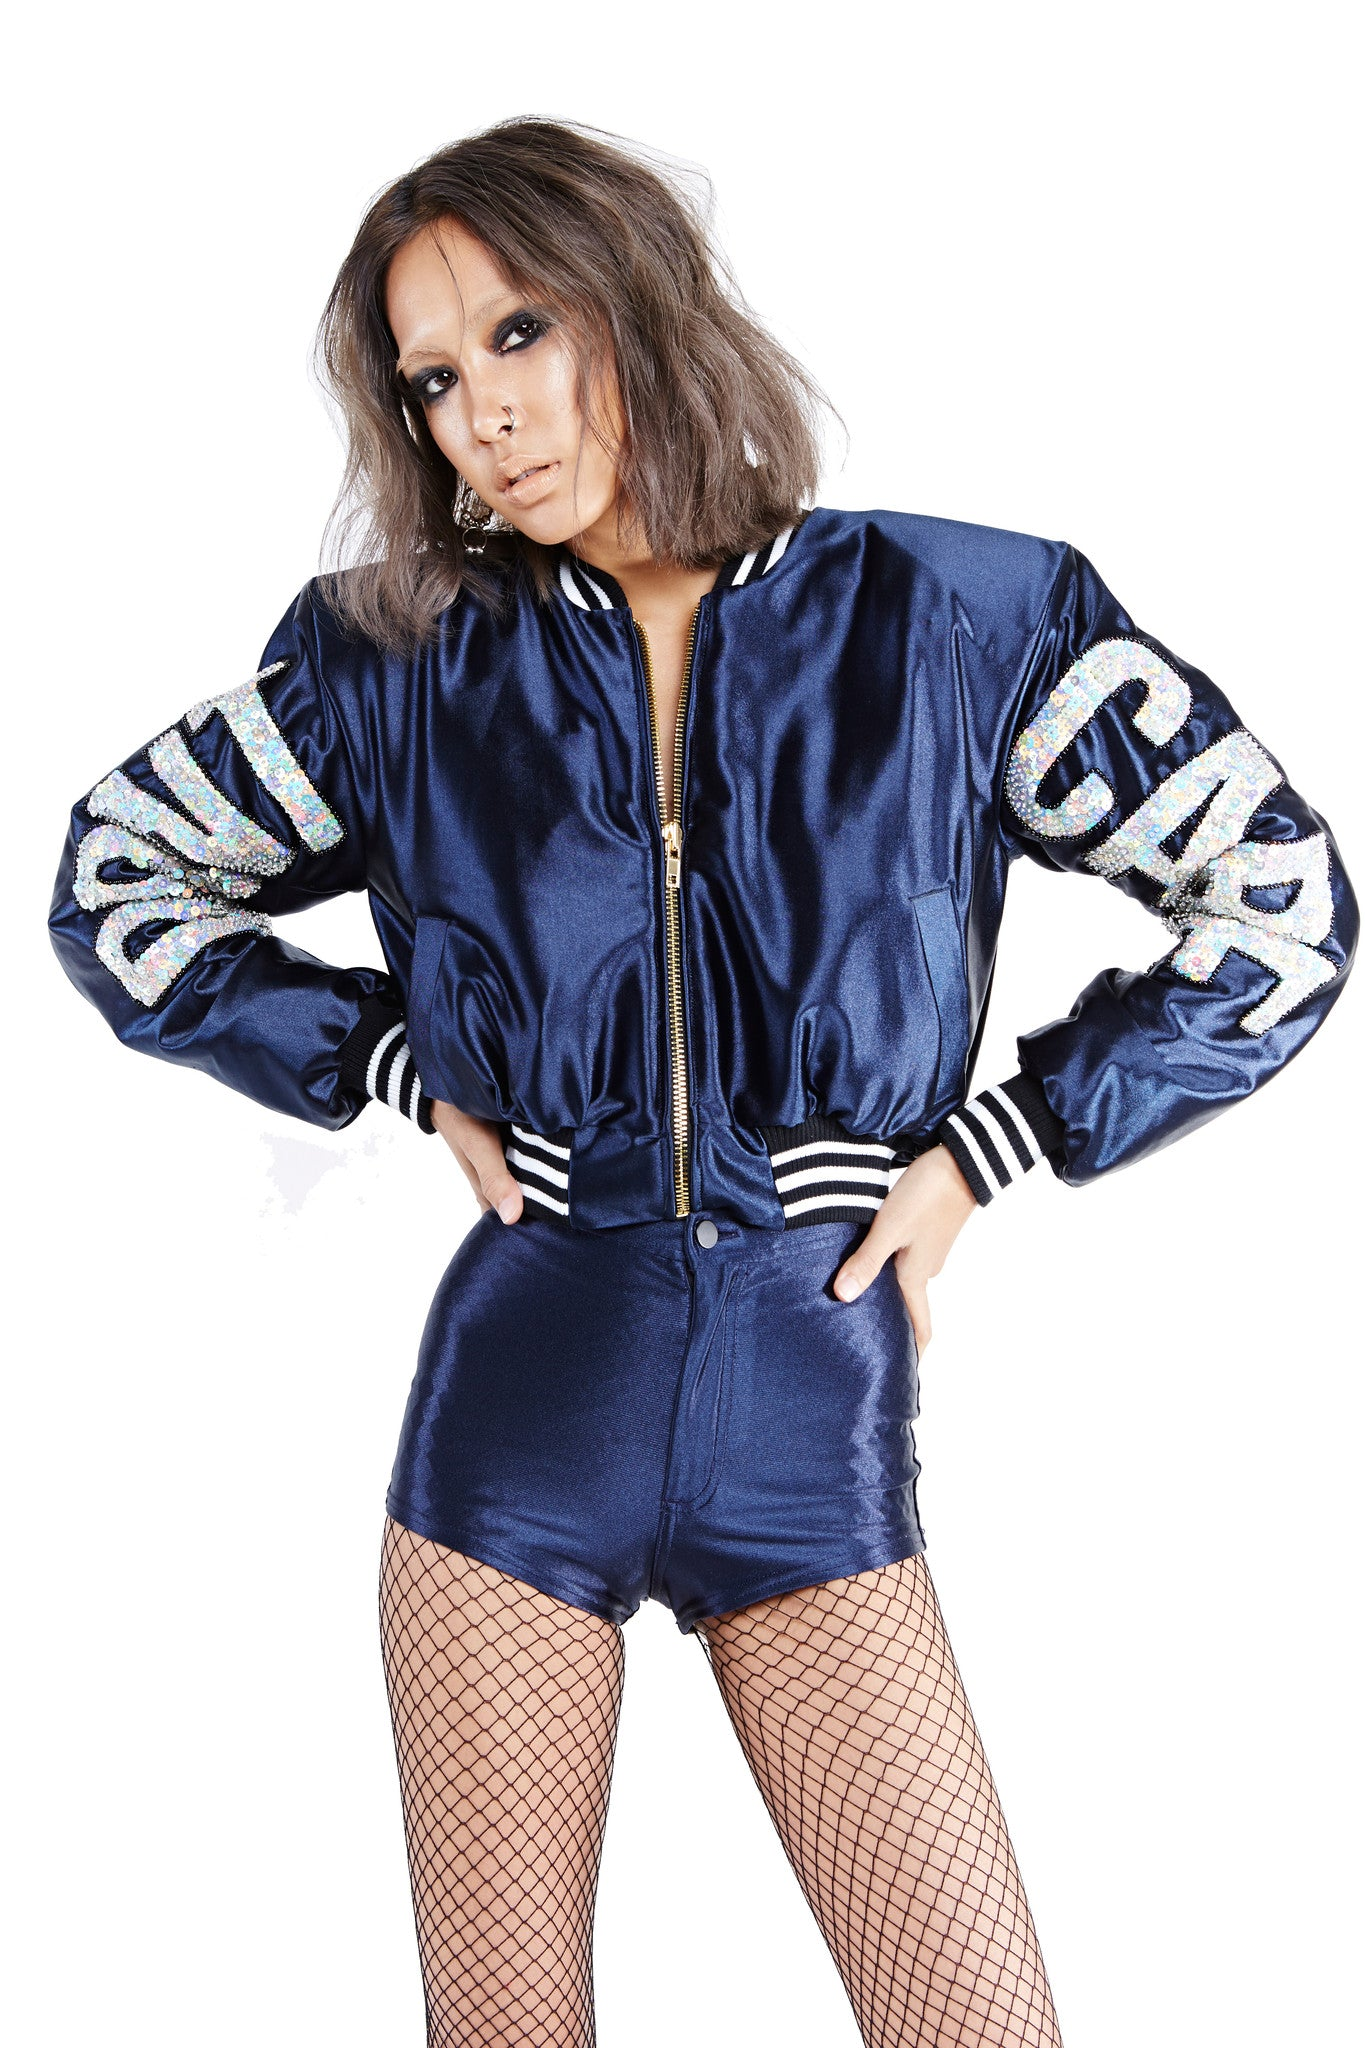 DON'T CARE Bomber Jacket - Navy Blue